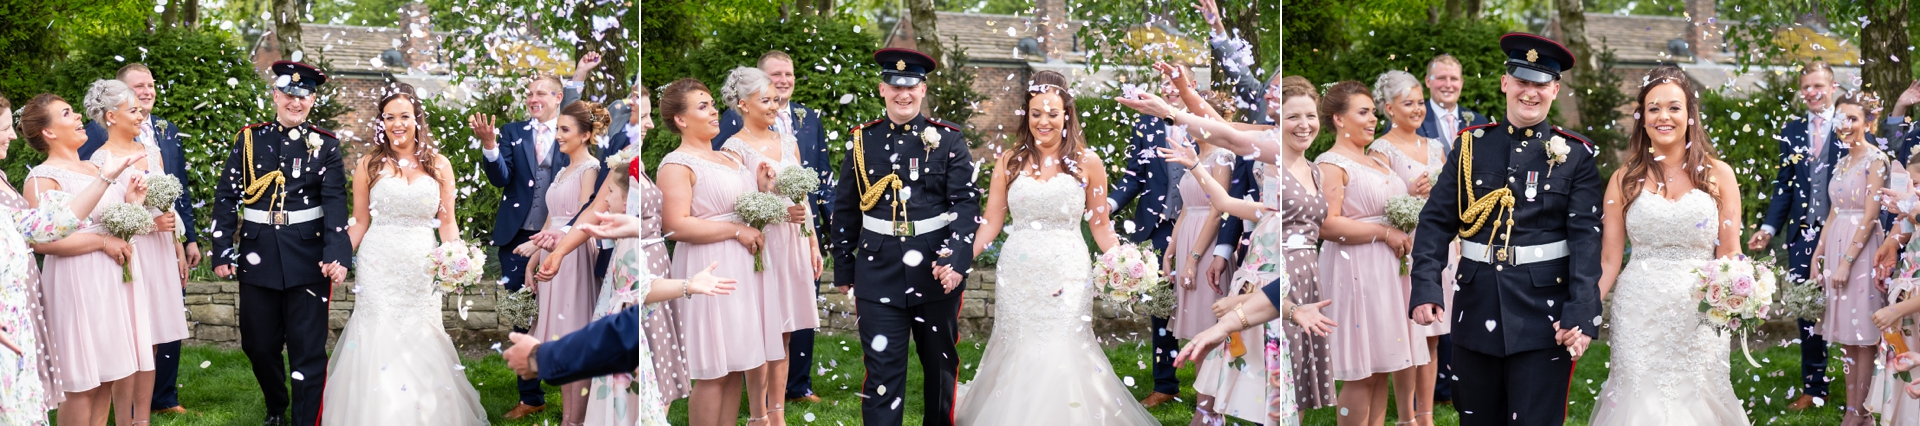 wedding the plough endon cheshire photographer photo 24.jpg